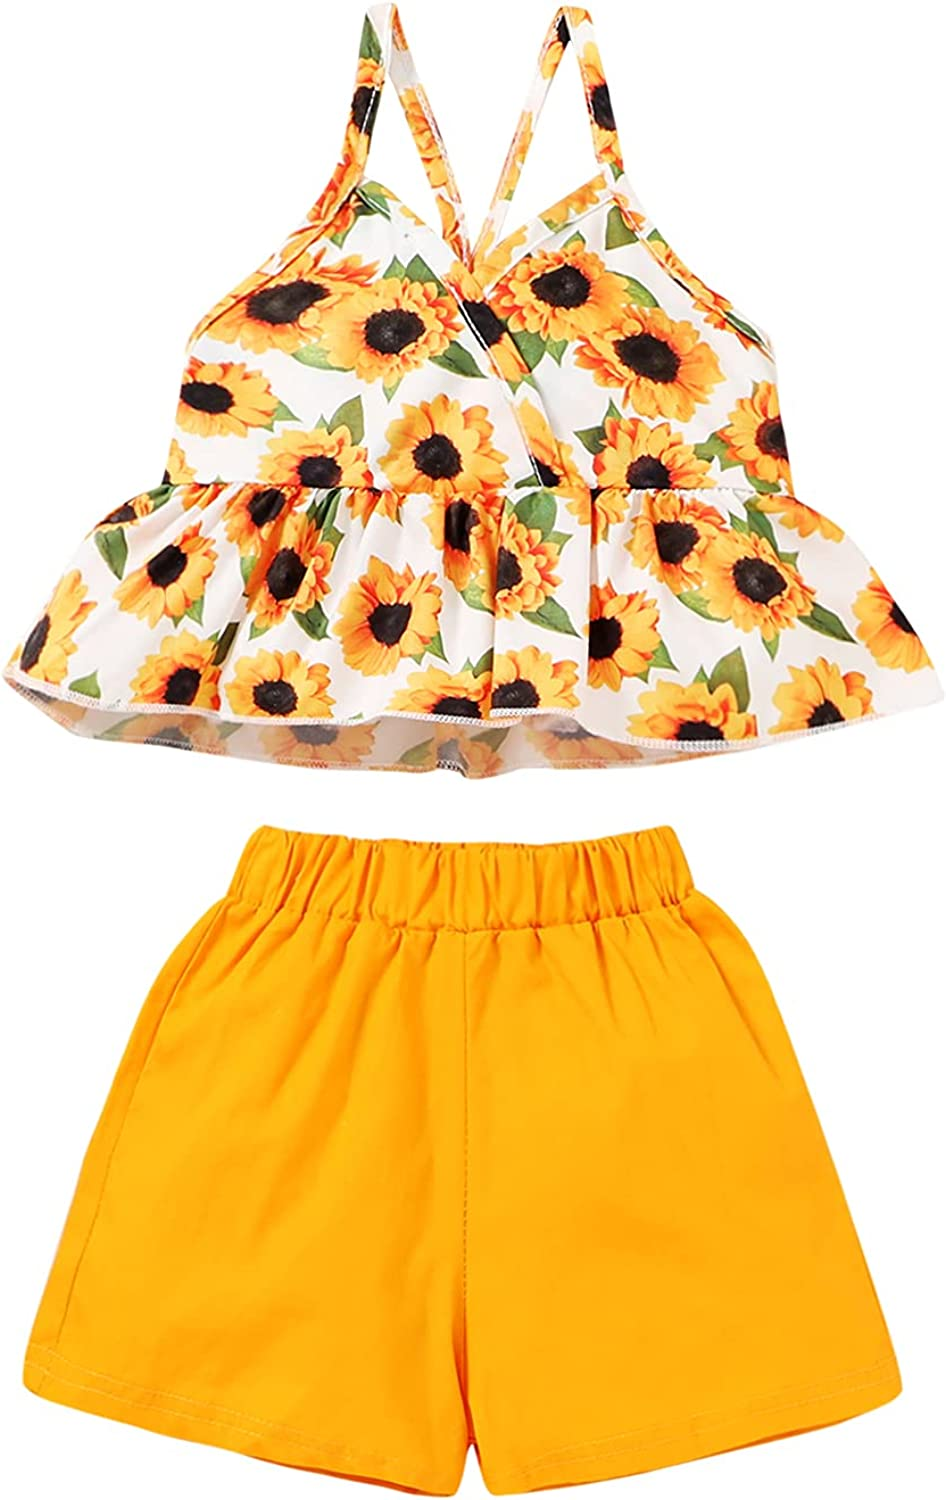 Toddler Baby Girl Summer Outfits Floral Ruffle Sleeveless Halter Shirt Kid Shorts Set for Baby Girl Beachwear 2pc Clothes